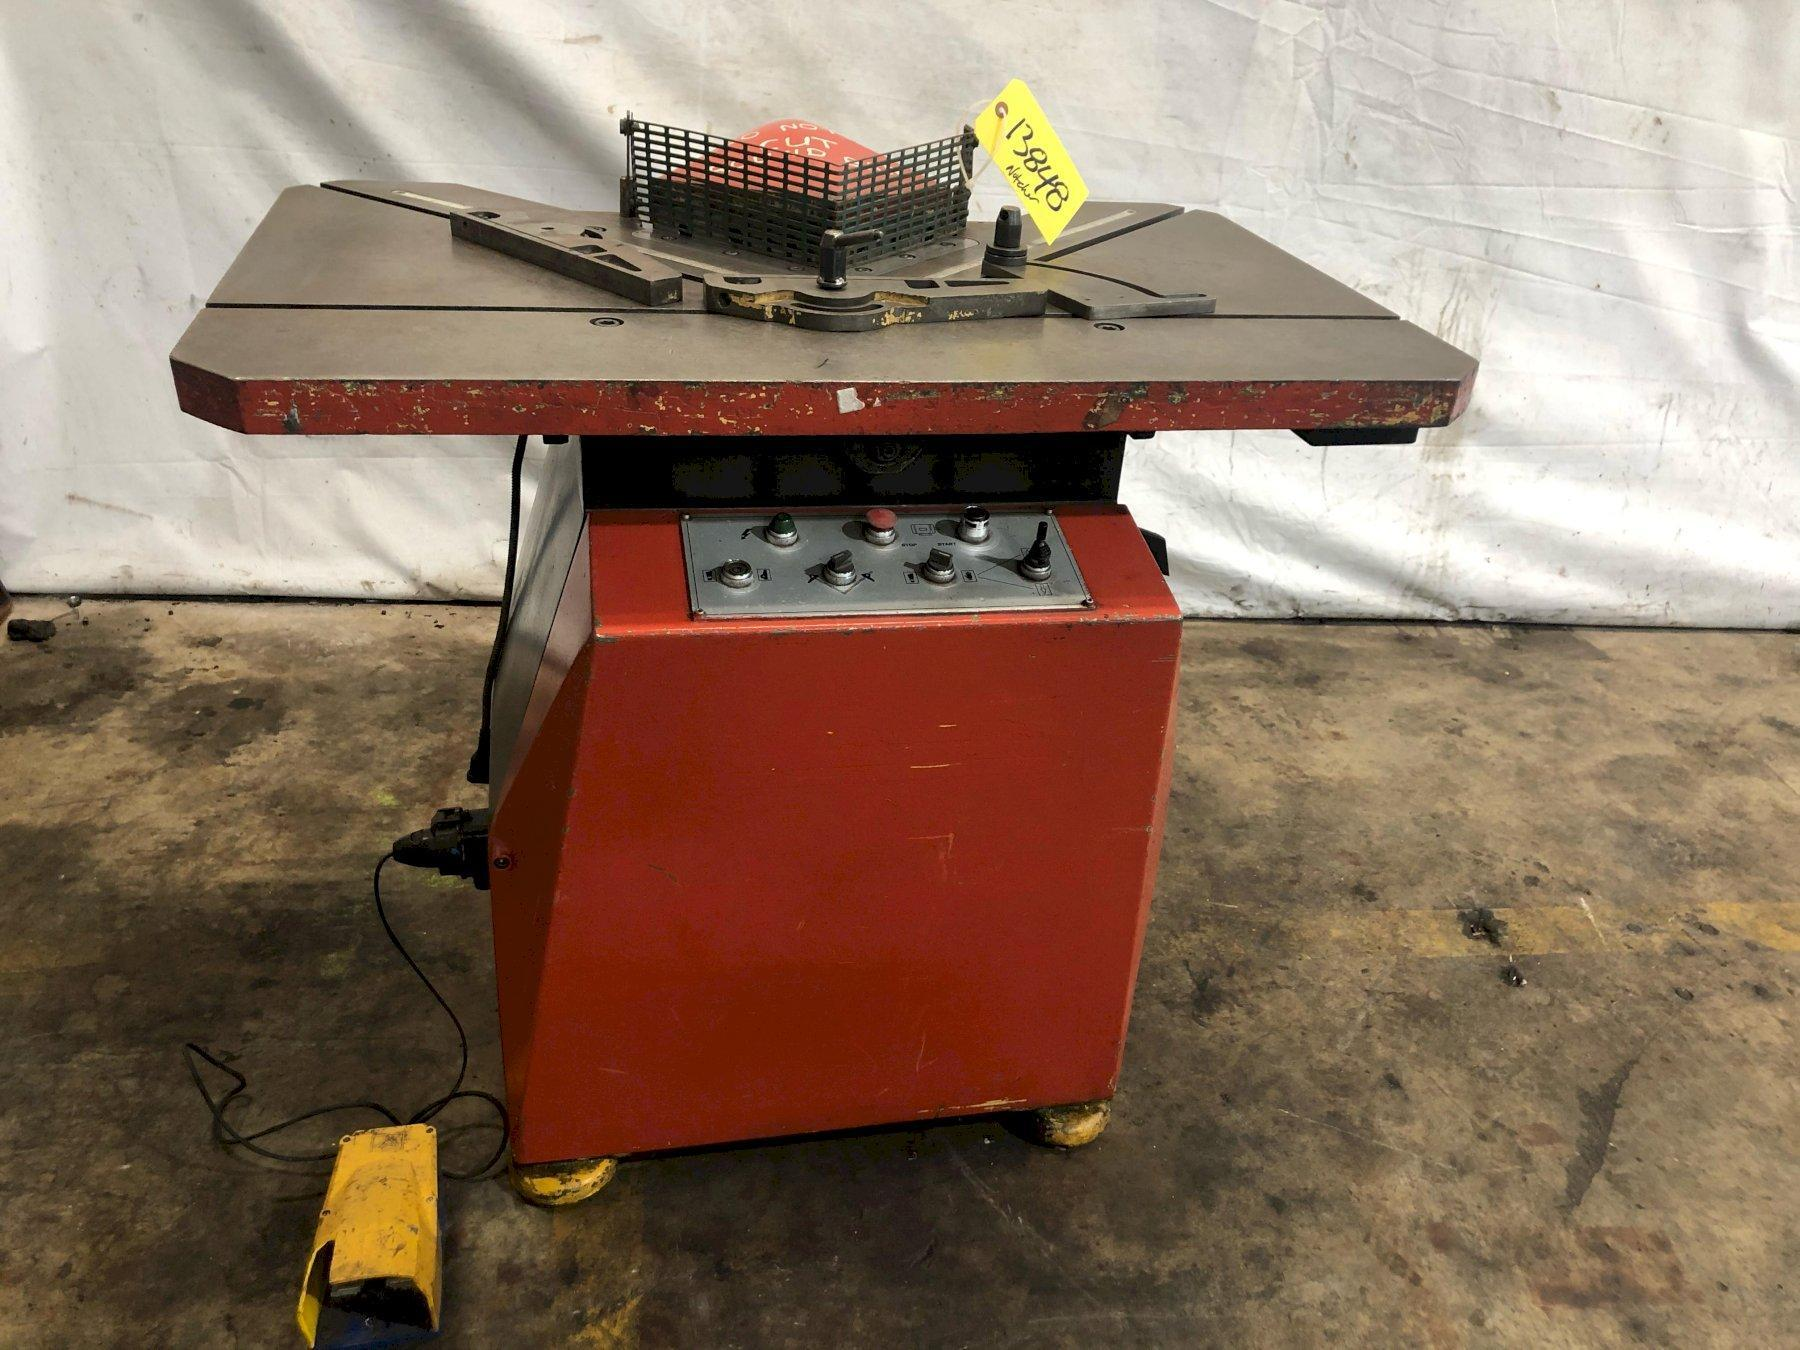 "8.75"" X 8.75"" X 10 GAUGE STRIPPIT MODEL #102661 HYDRAULIC CORNER NOTCHER: STOCK 13848"